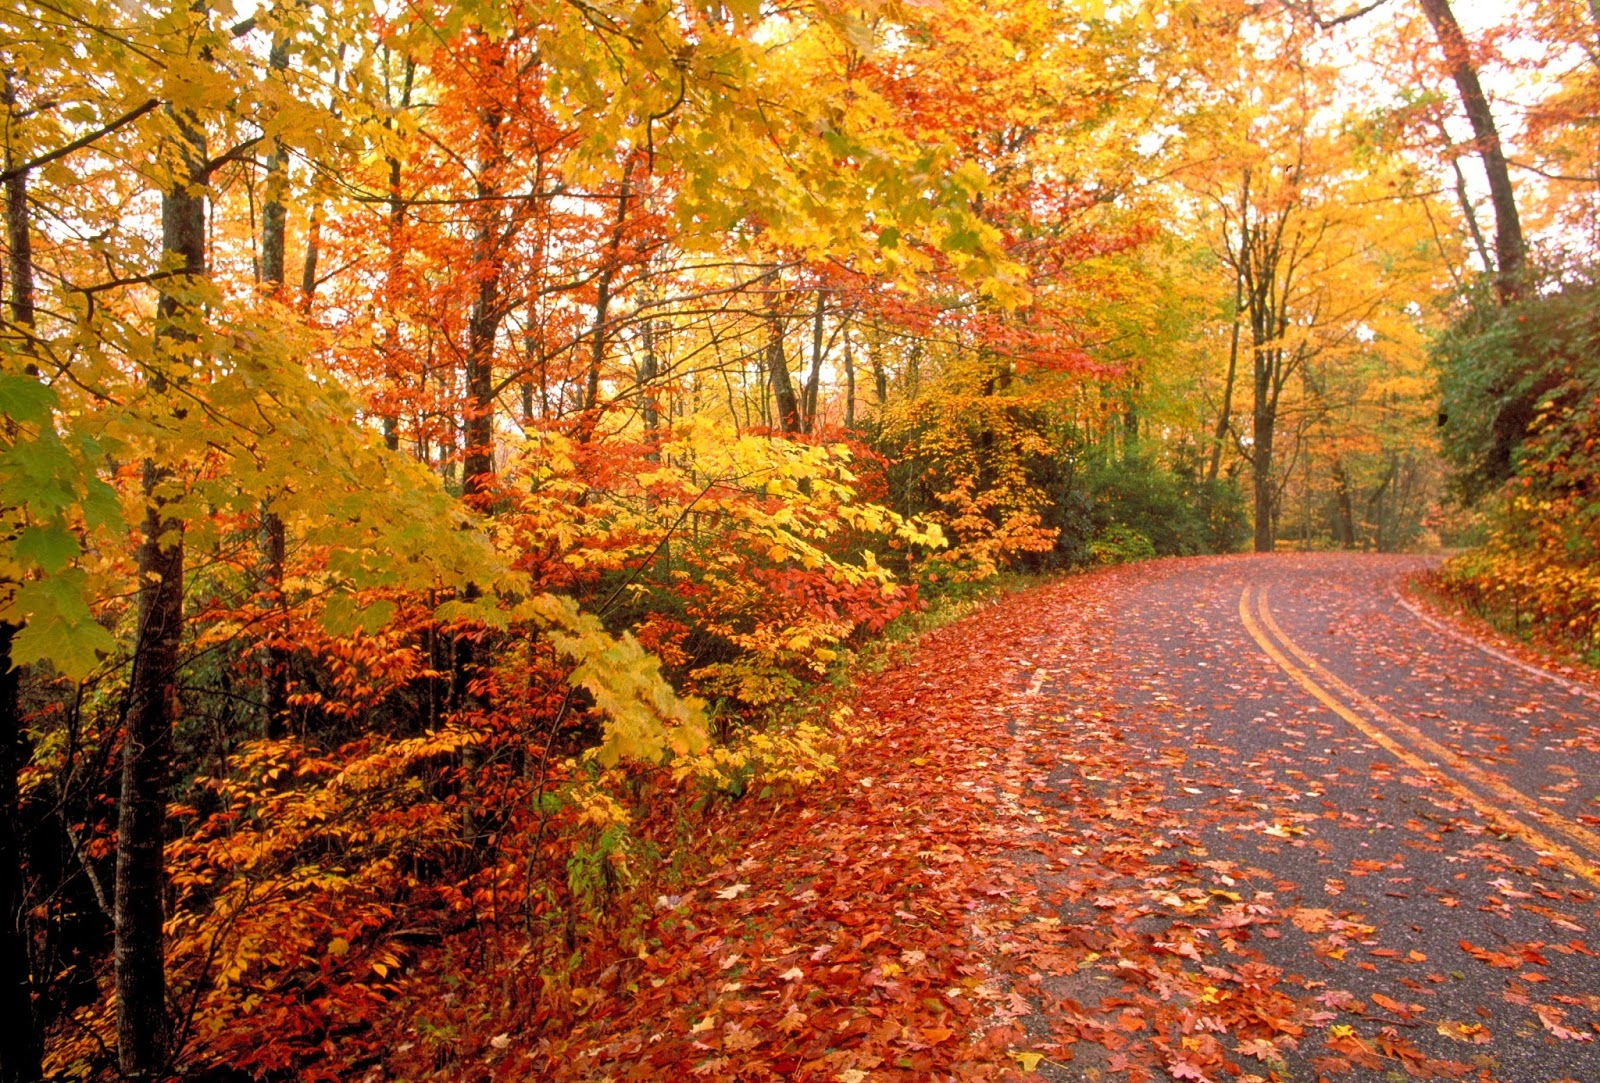 Best Drives in Kentucky for Fall Colors